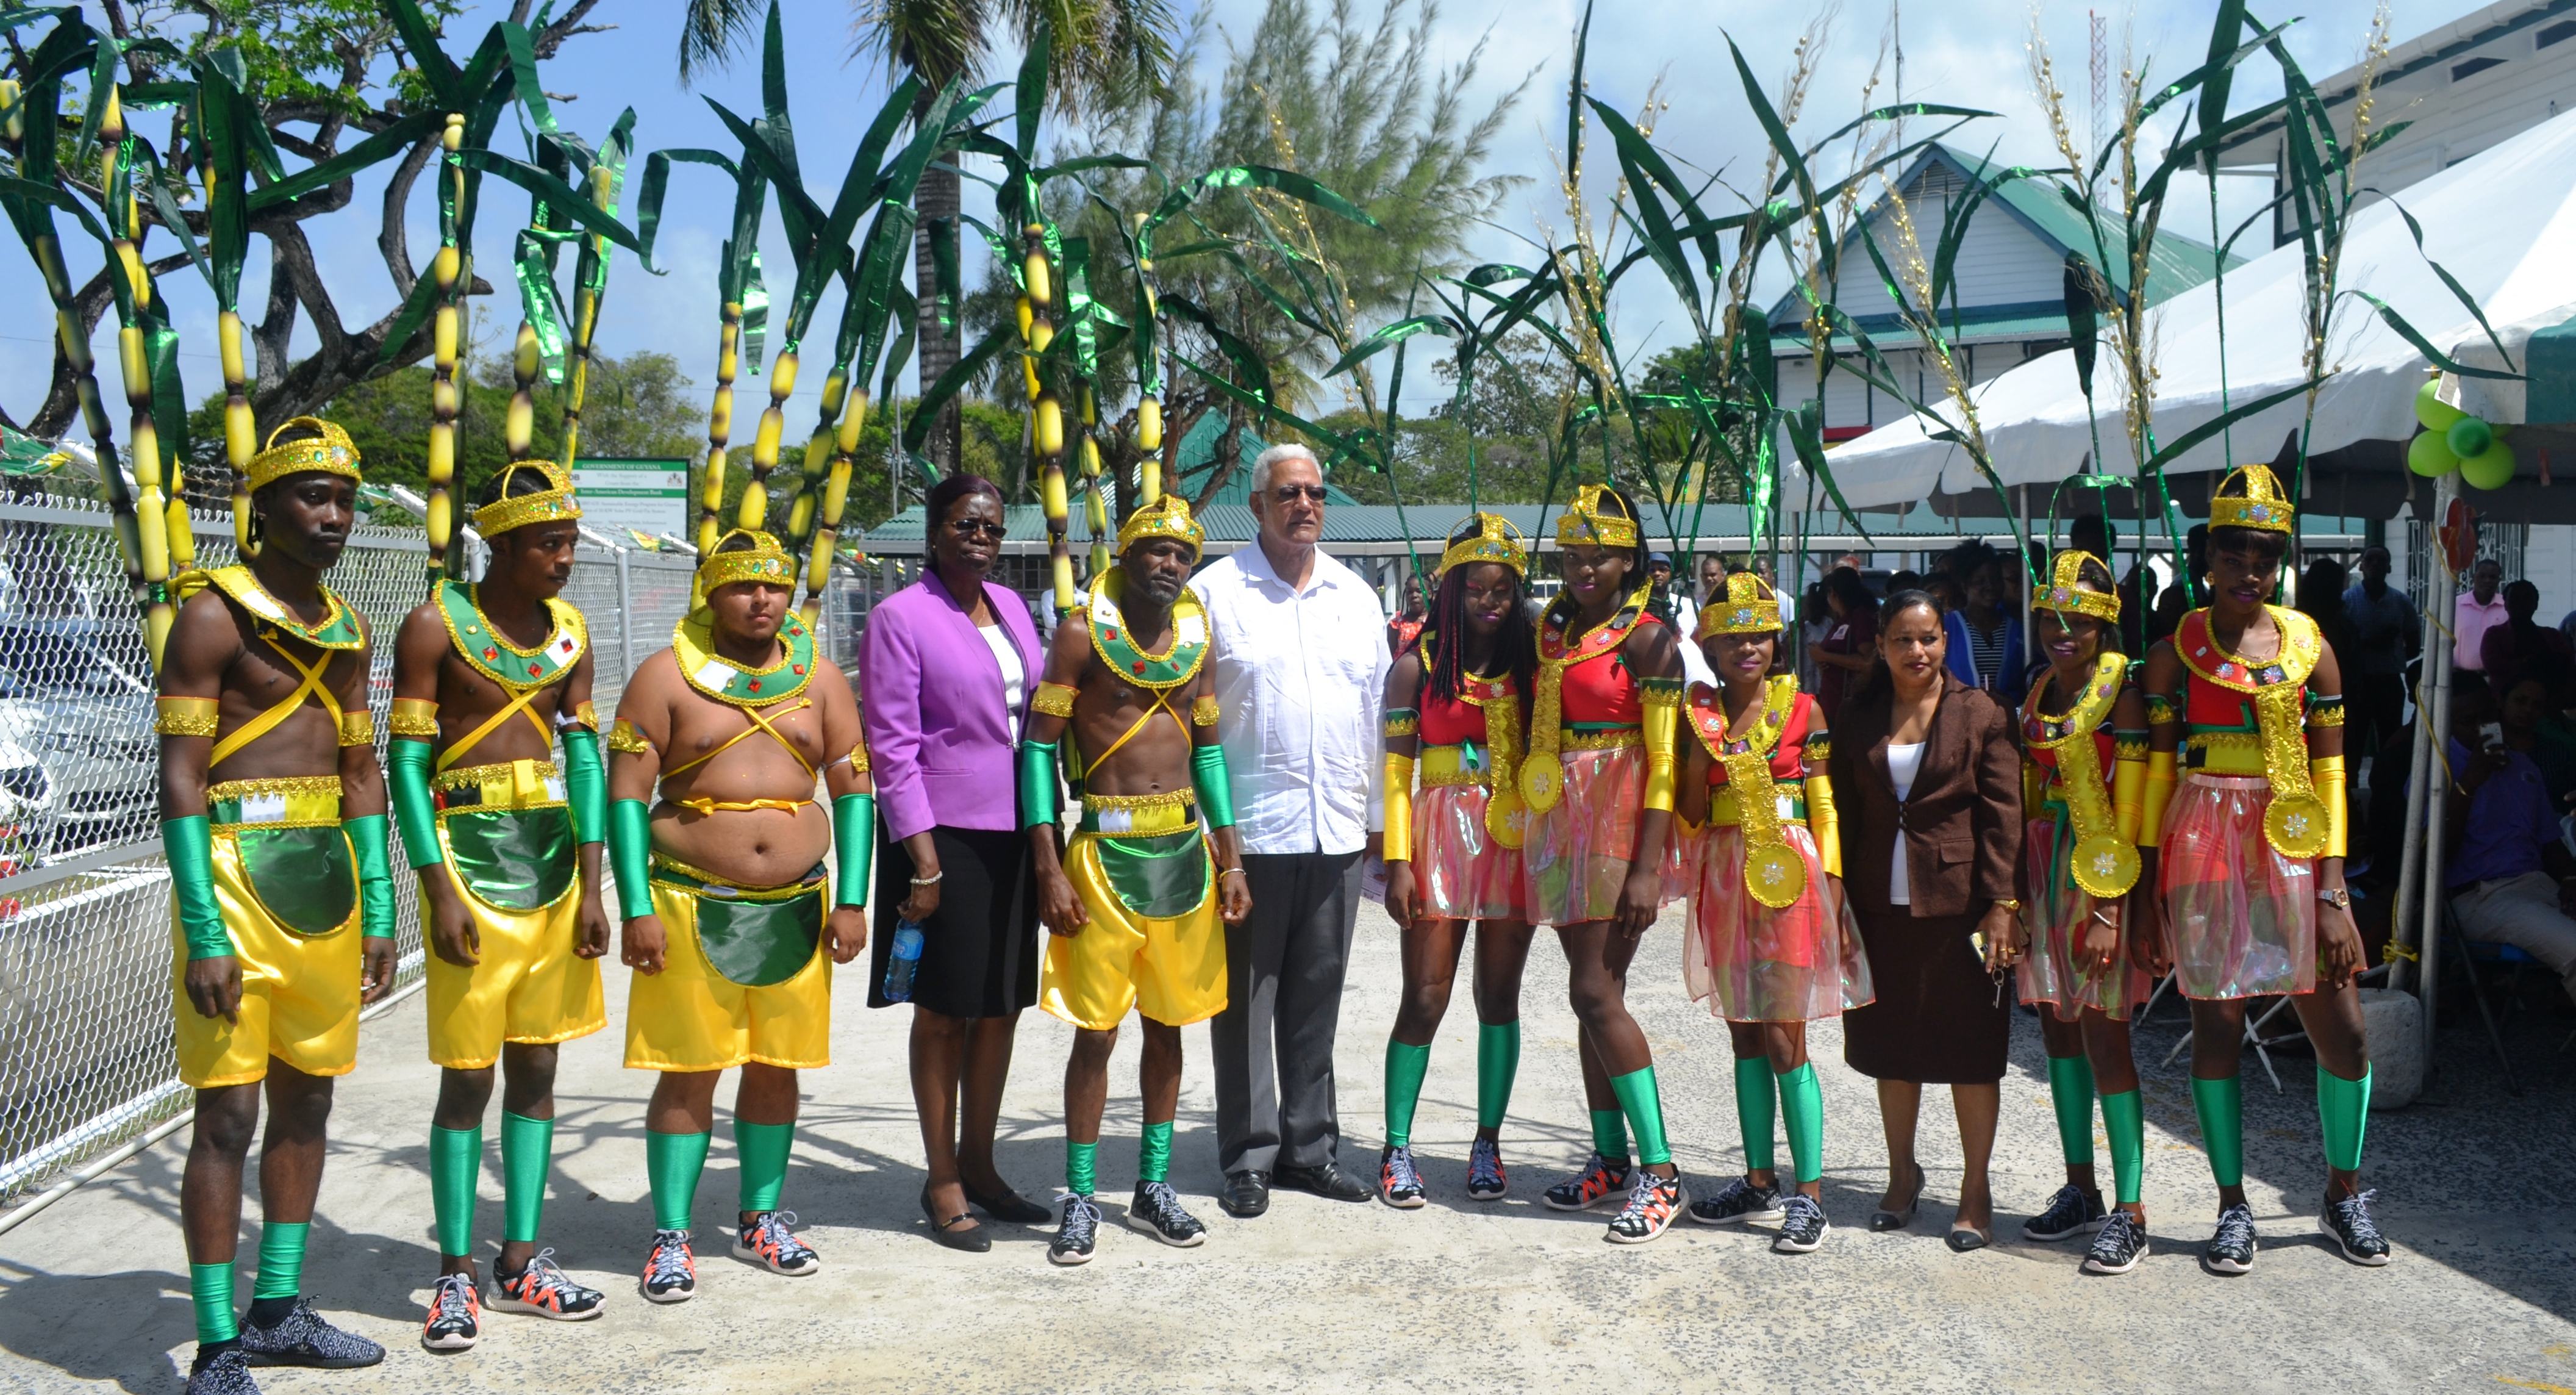 Minister Holder and PS Nedd are pictured with some of the revellers who displayed the costumes